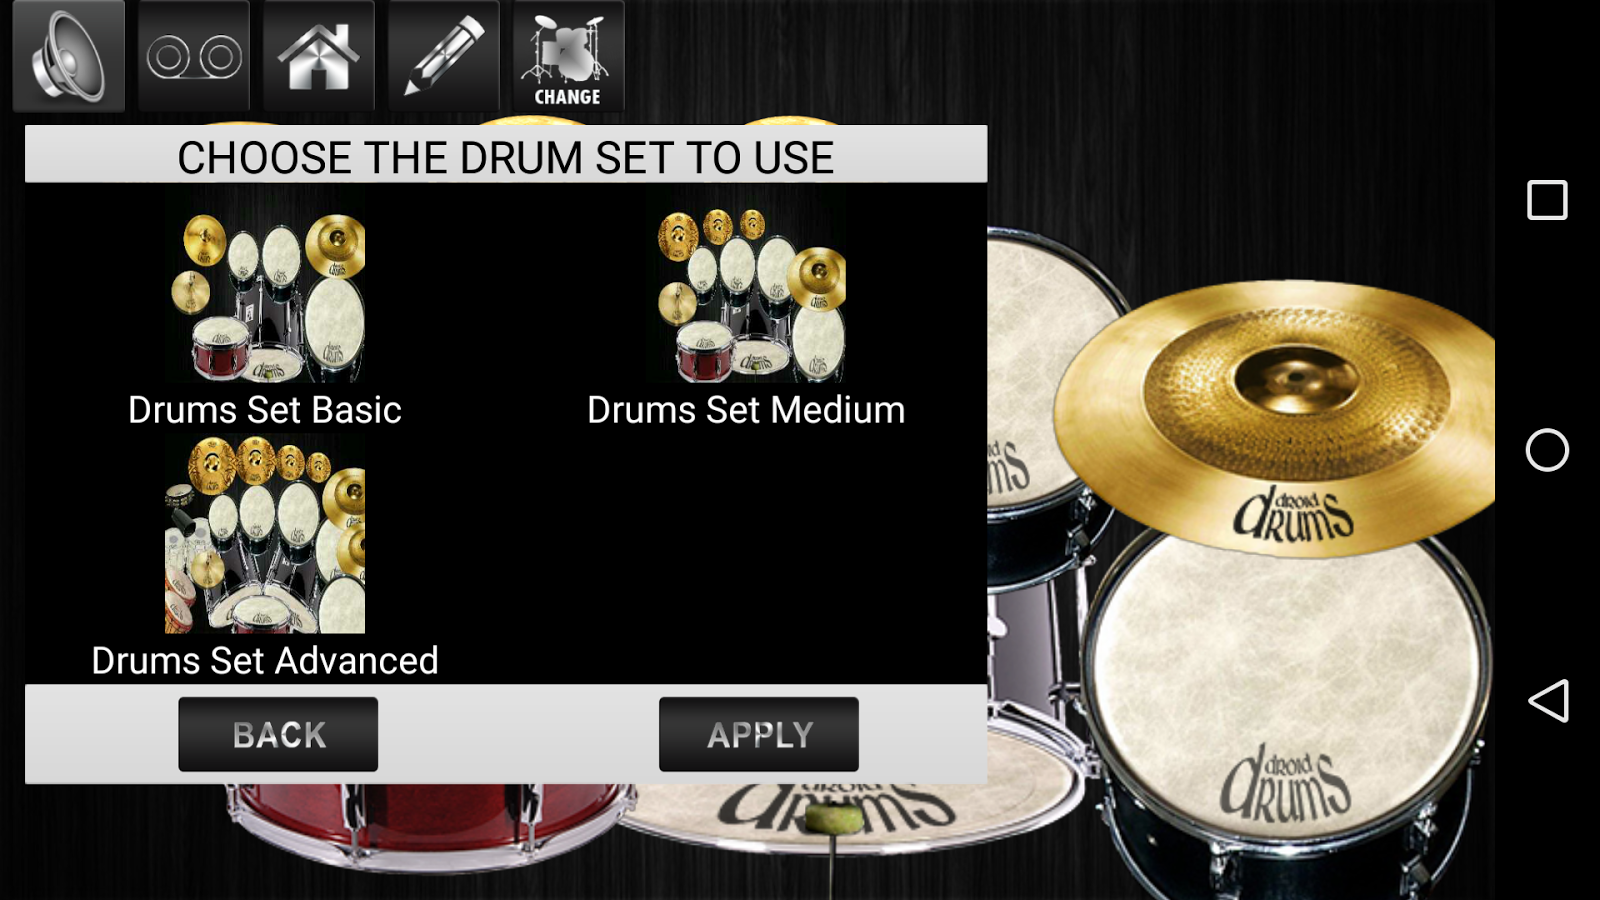 drums droid hd 2016 free apk aplikasi drum terbaik varapido. Black Bedroom Furniture Sets. Home Design Ideas